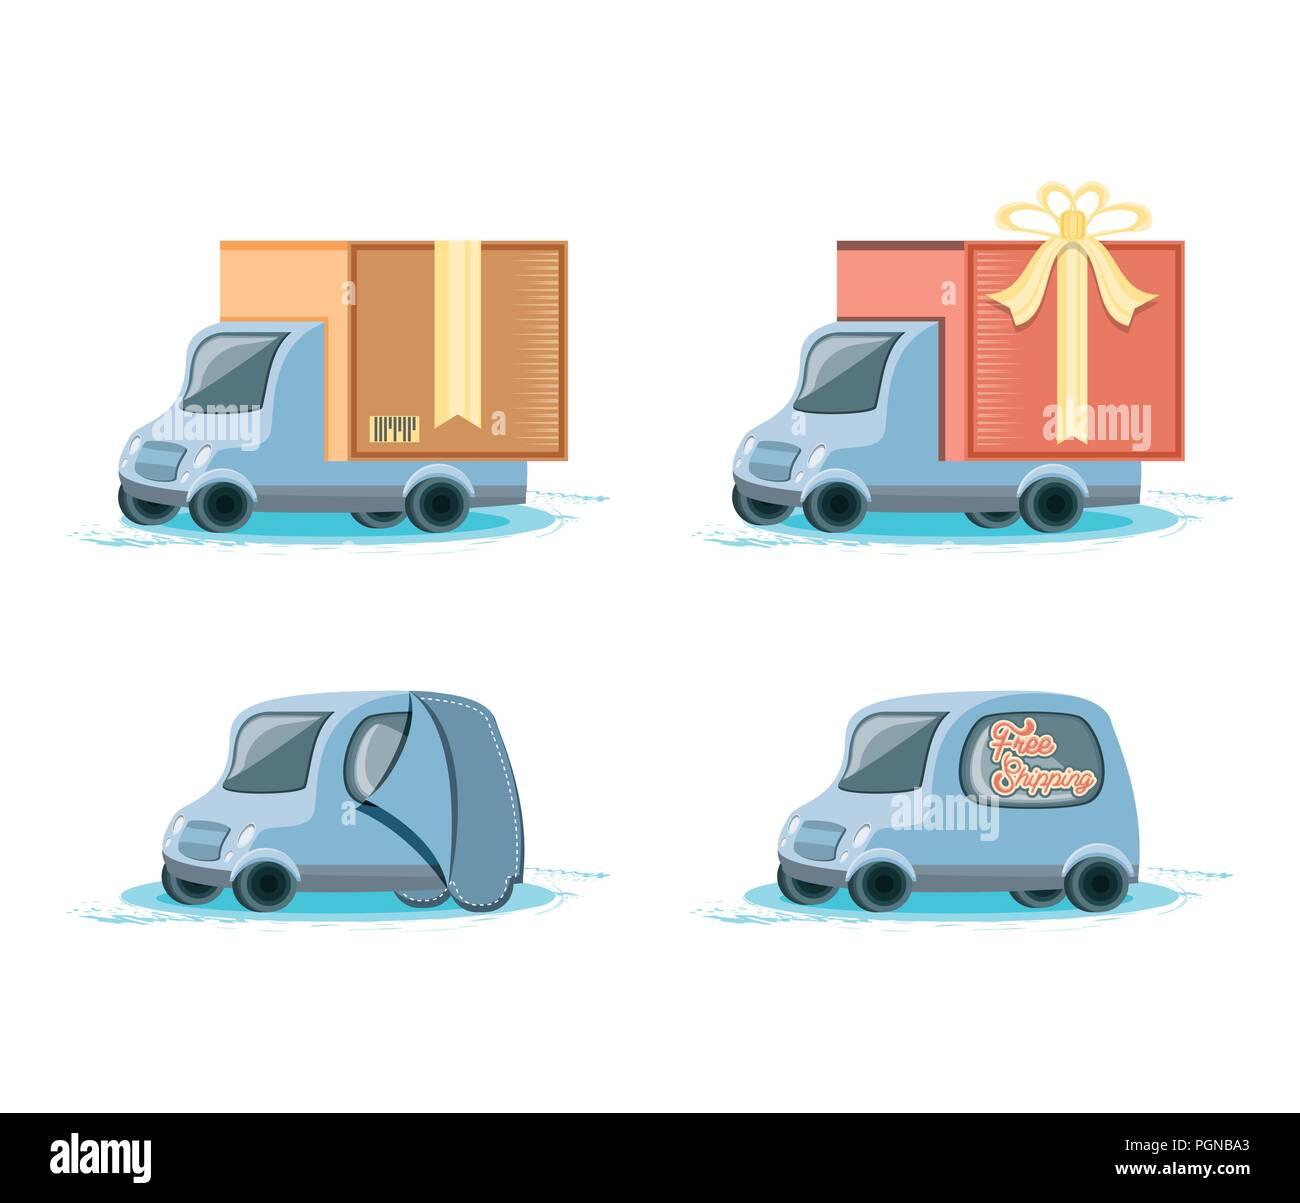 fast delivery service with trucks vector illustration design - Stock Image